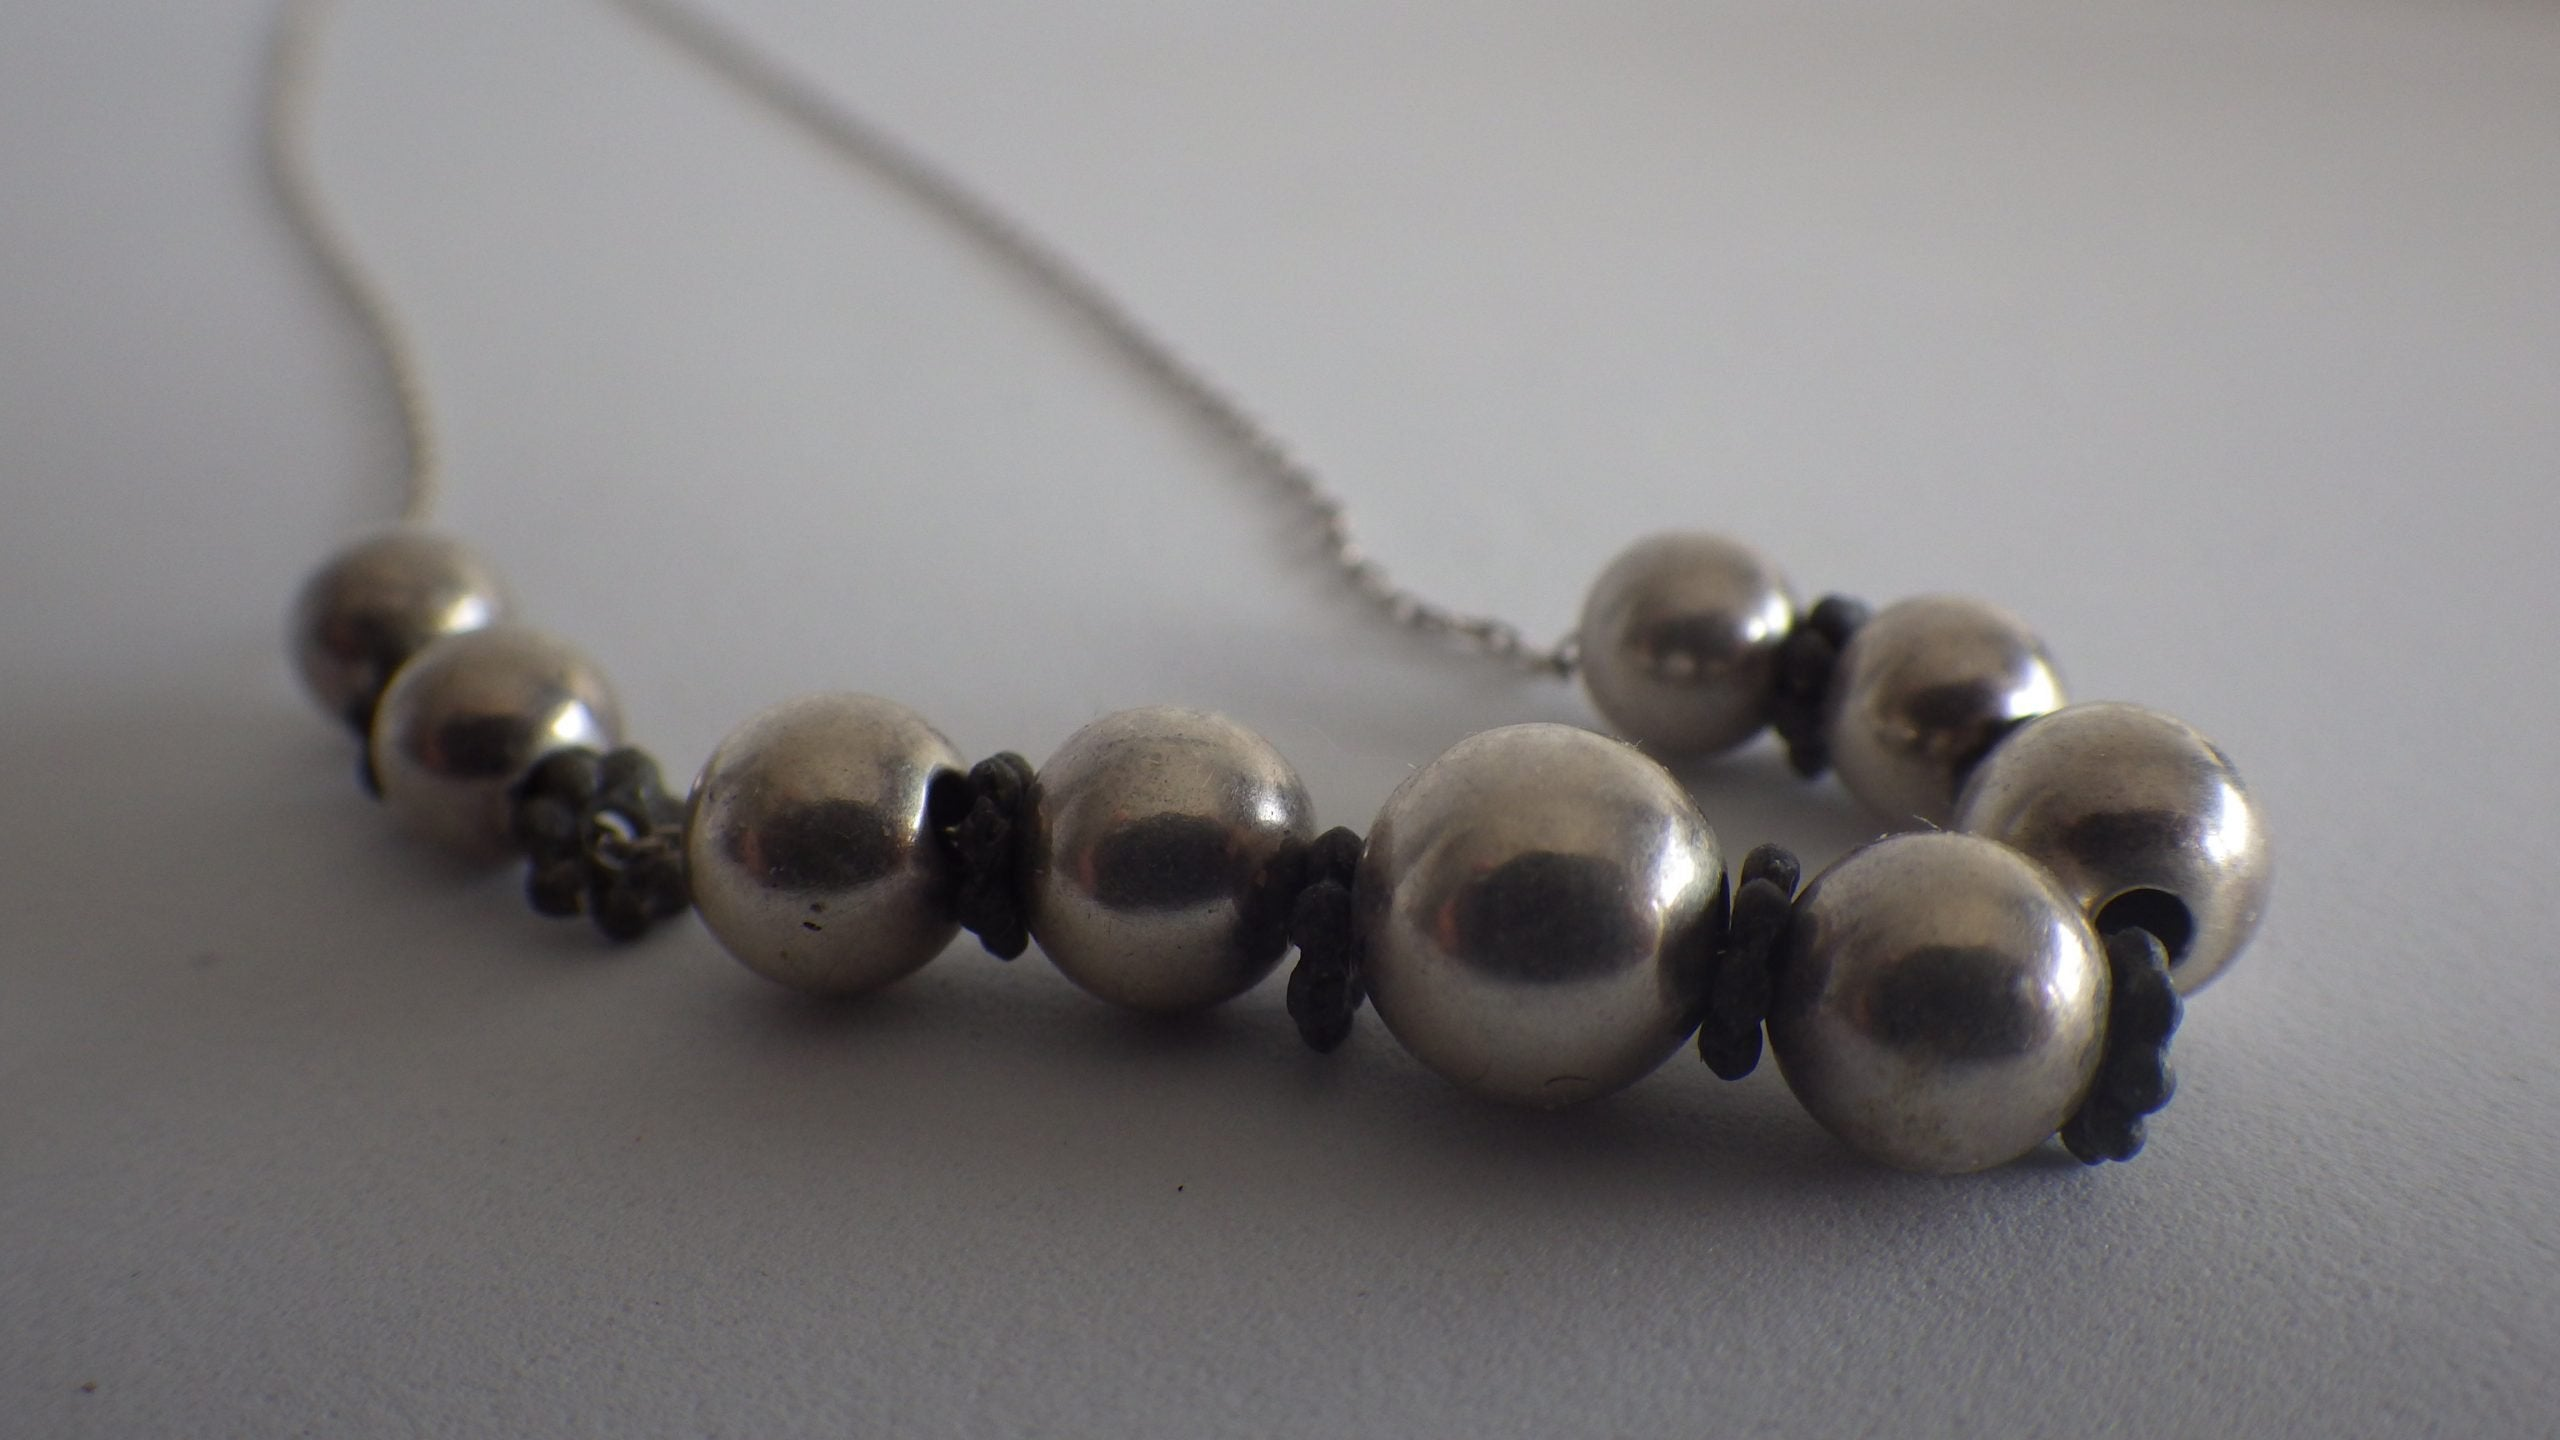 Vintage Sterling Silver Unique Ball Necklace & Chain